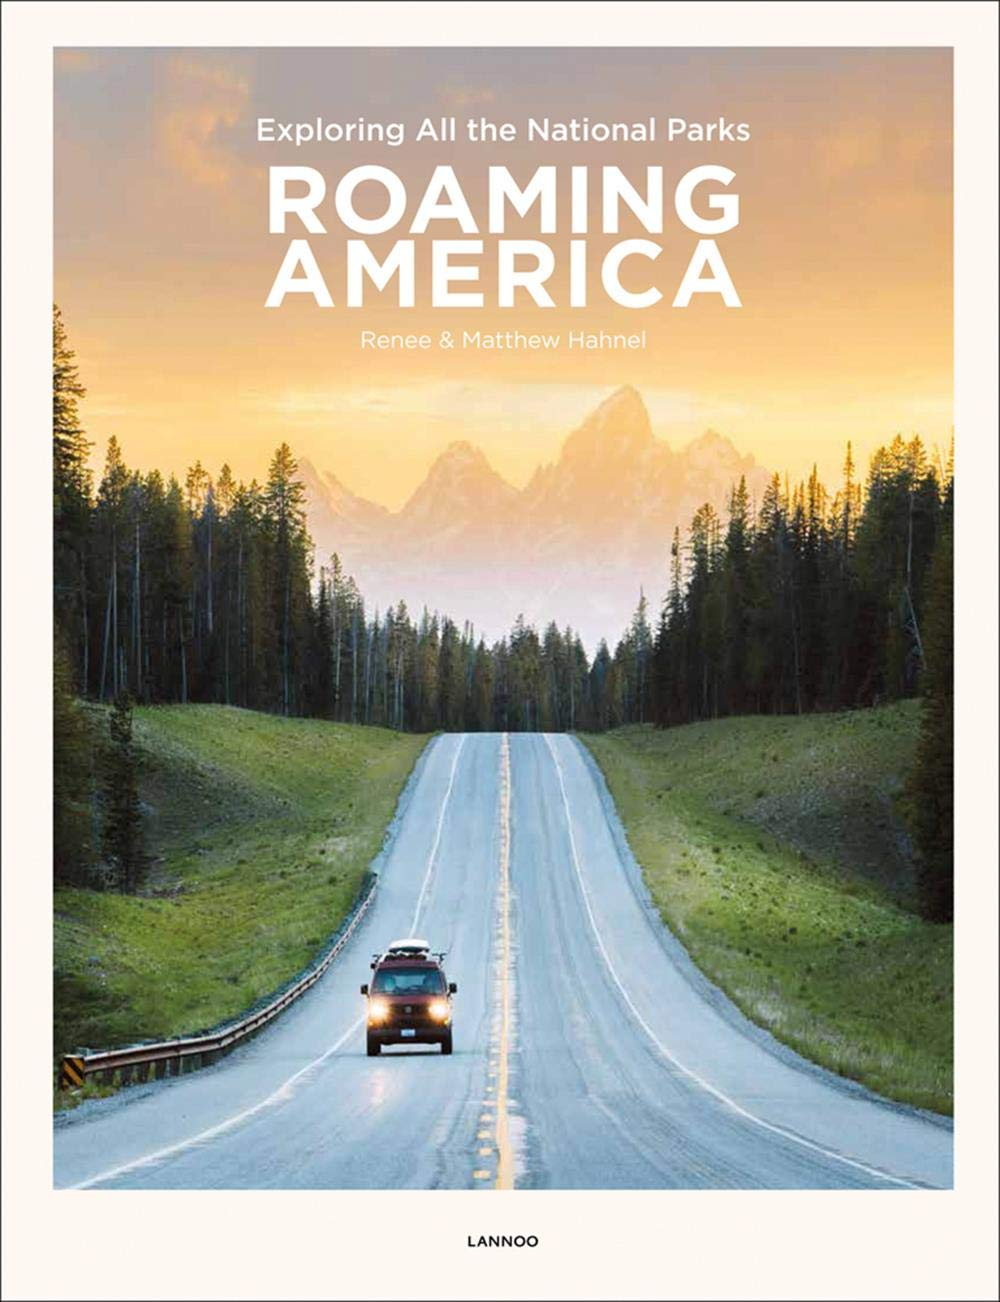 Roaming America: Exploring All the National Parks by Lannoo Publishers